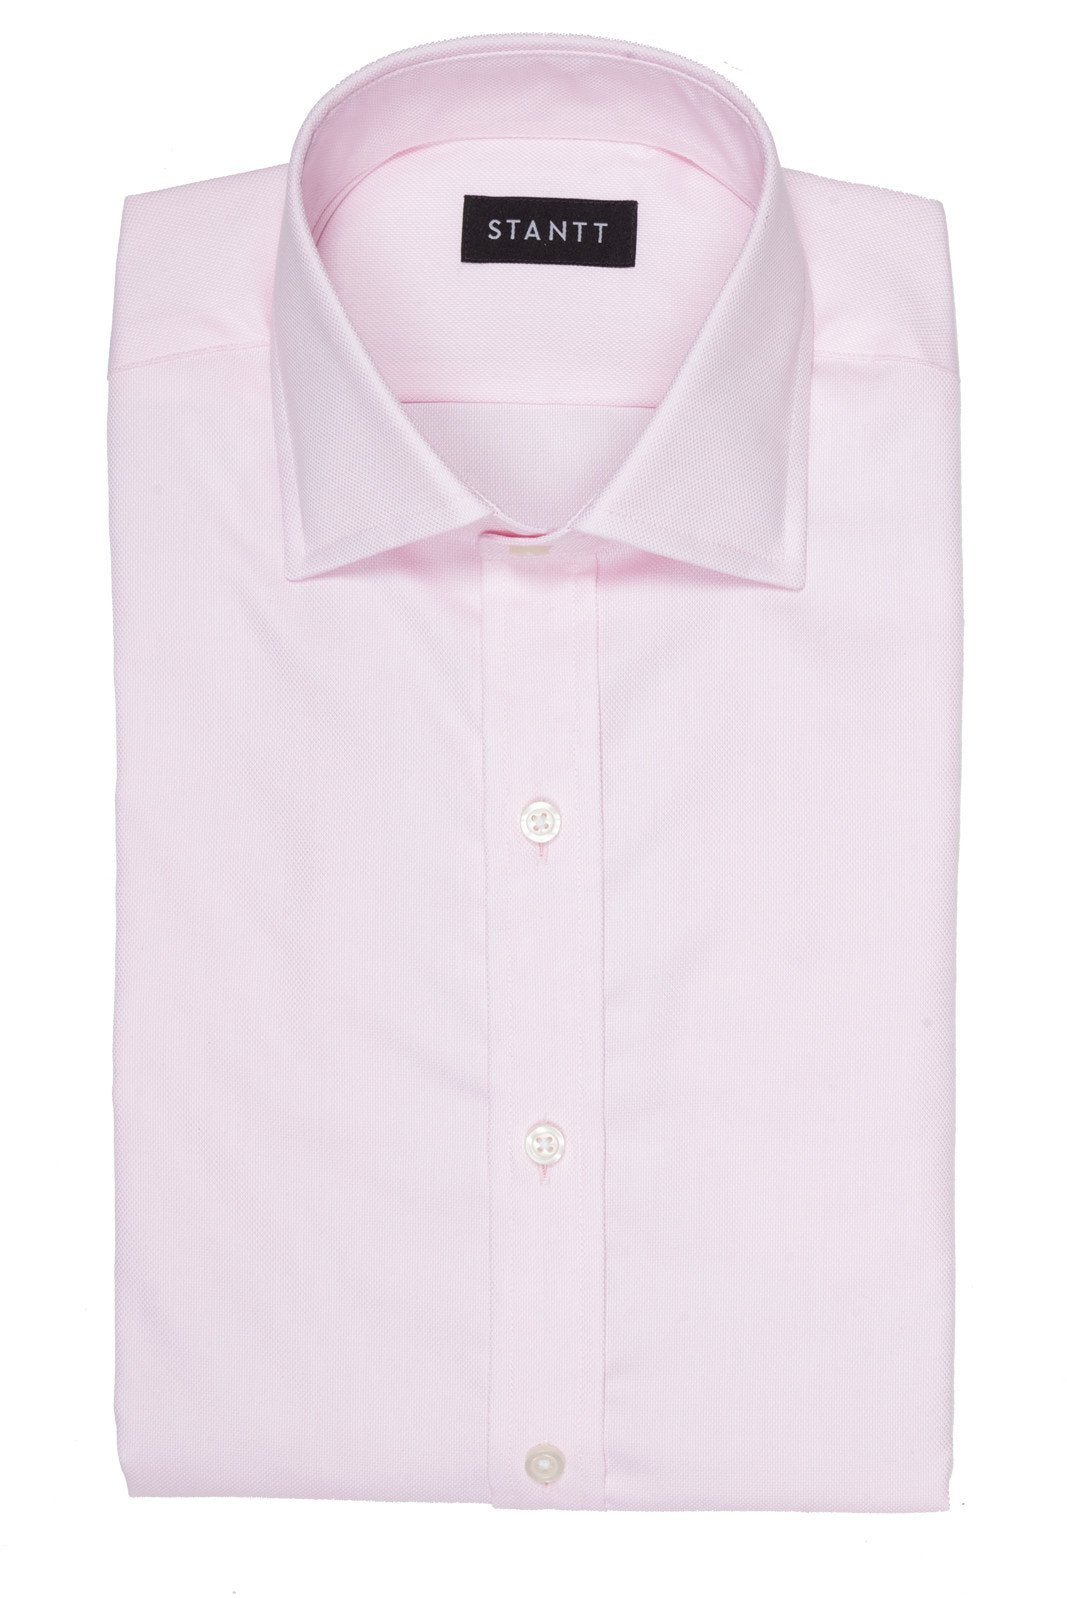 Pink Royal Oxford: Modified-Spread Collar, Barrel Cuff